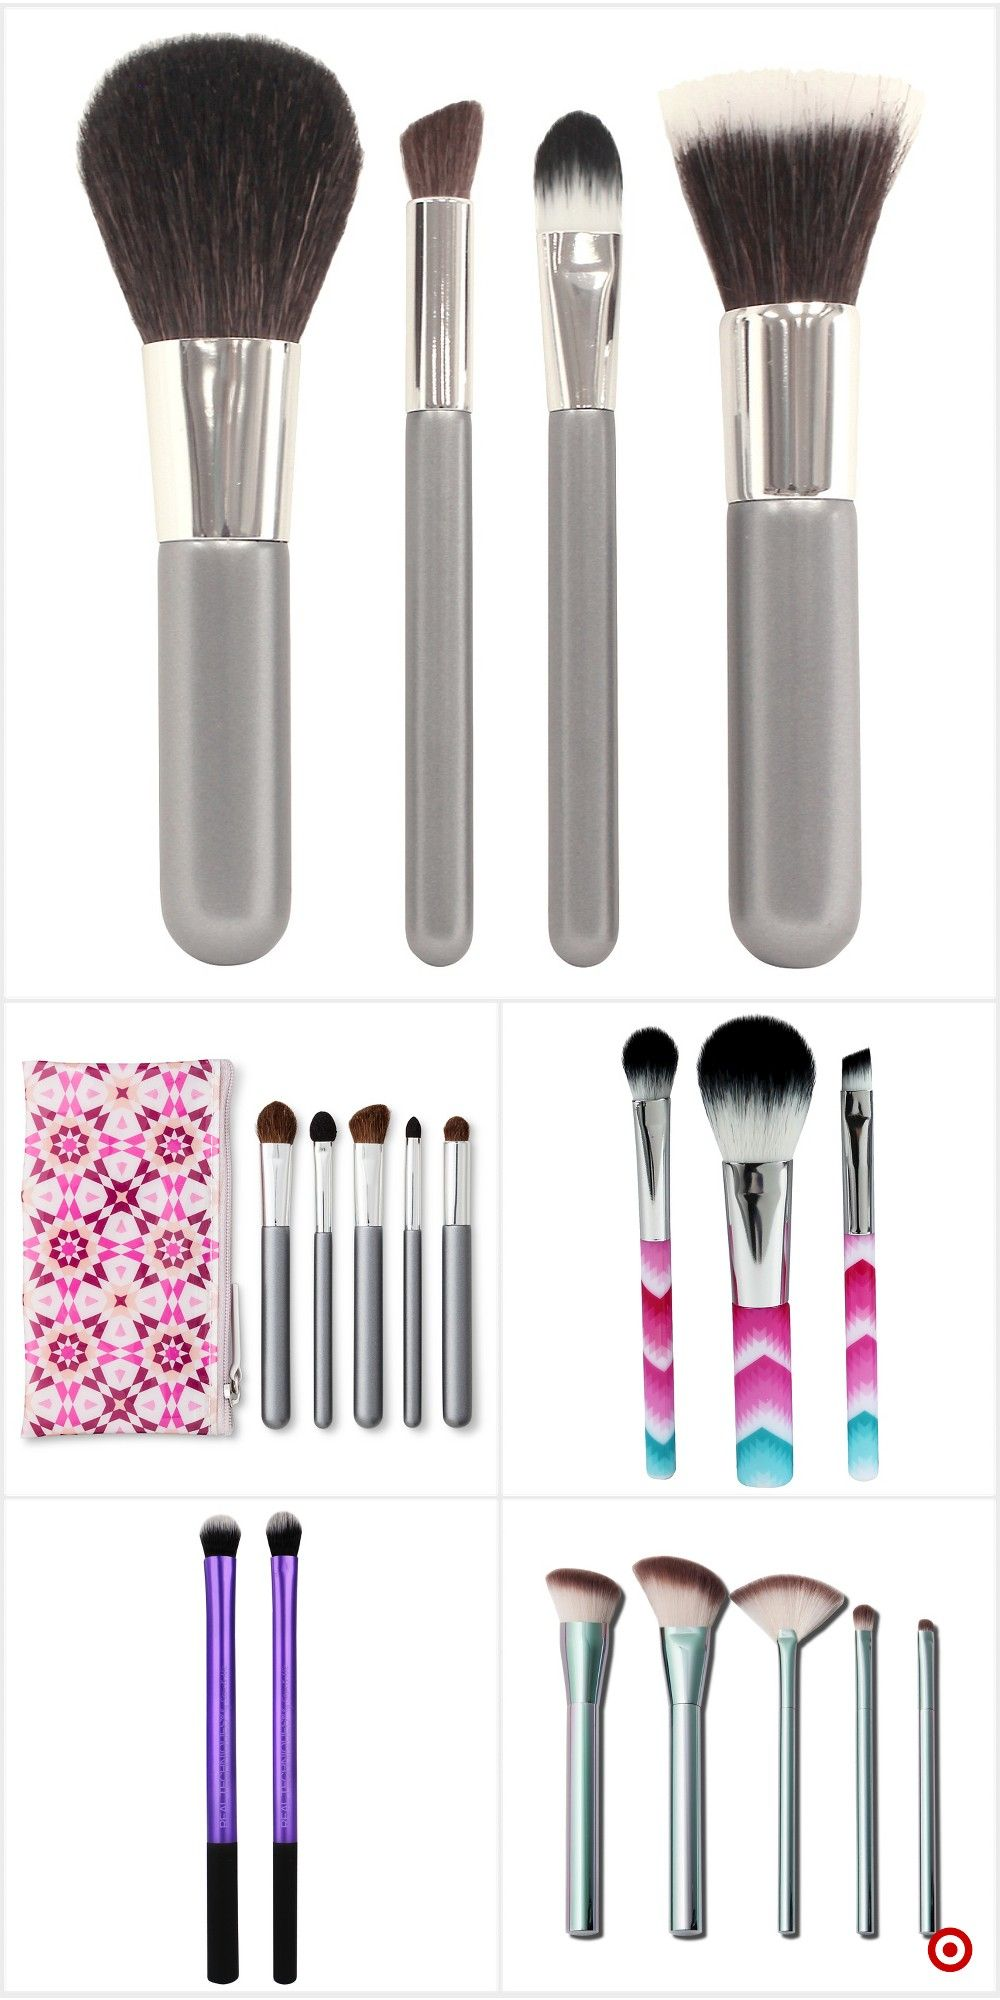 Shop Target For Makeup Brushes And Sets You Will Love At Great Low Prices Free Shipping On Orders Makeup Brushes Affordable Makeup Brushes Makeup Brush Basics